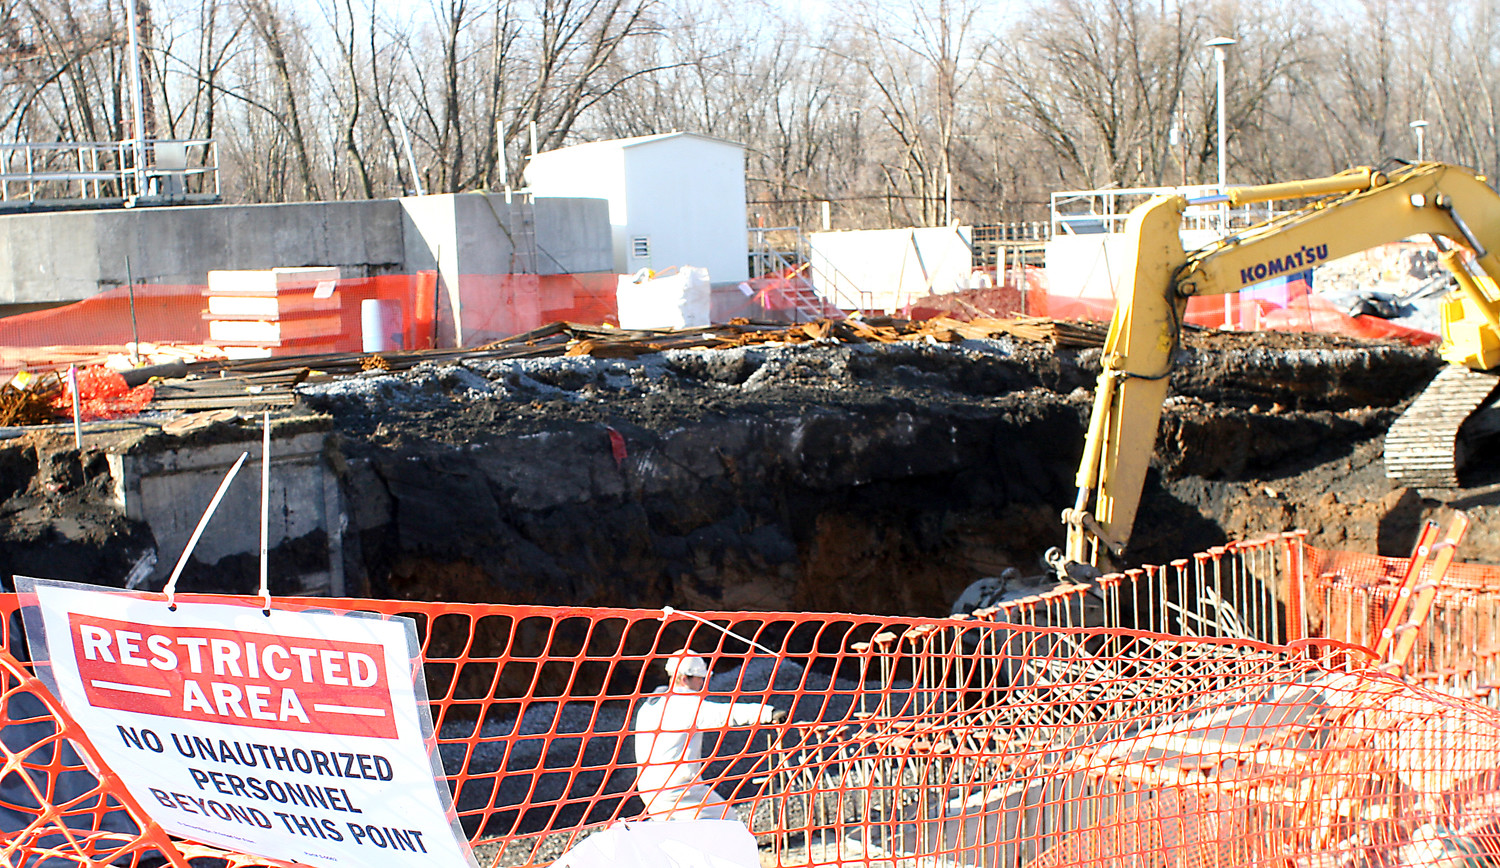 Workers remove soil contaminated with arsenic from the Highspire Waste Water Treatment Plant site. Workers must wear special disposable Tyvek suits when working with the soil.